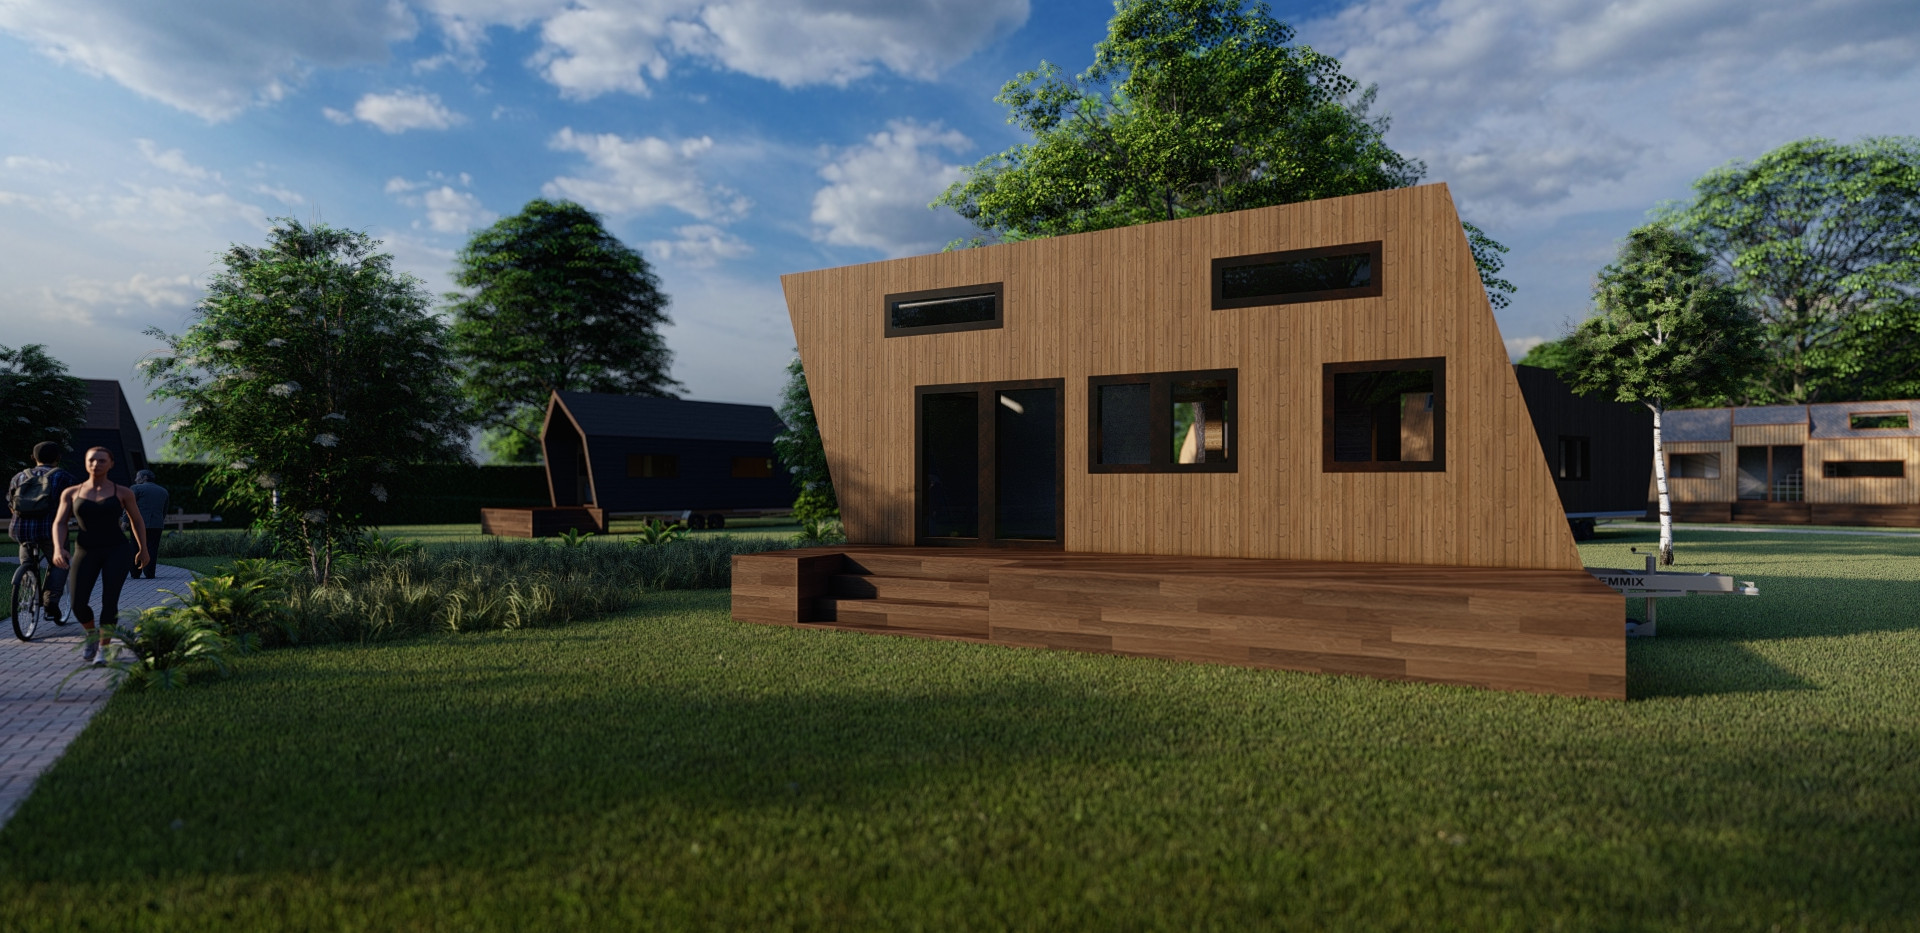 Tiny House Project Image 4.jpg